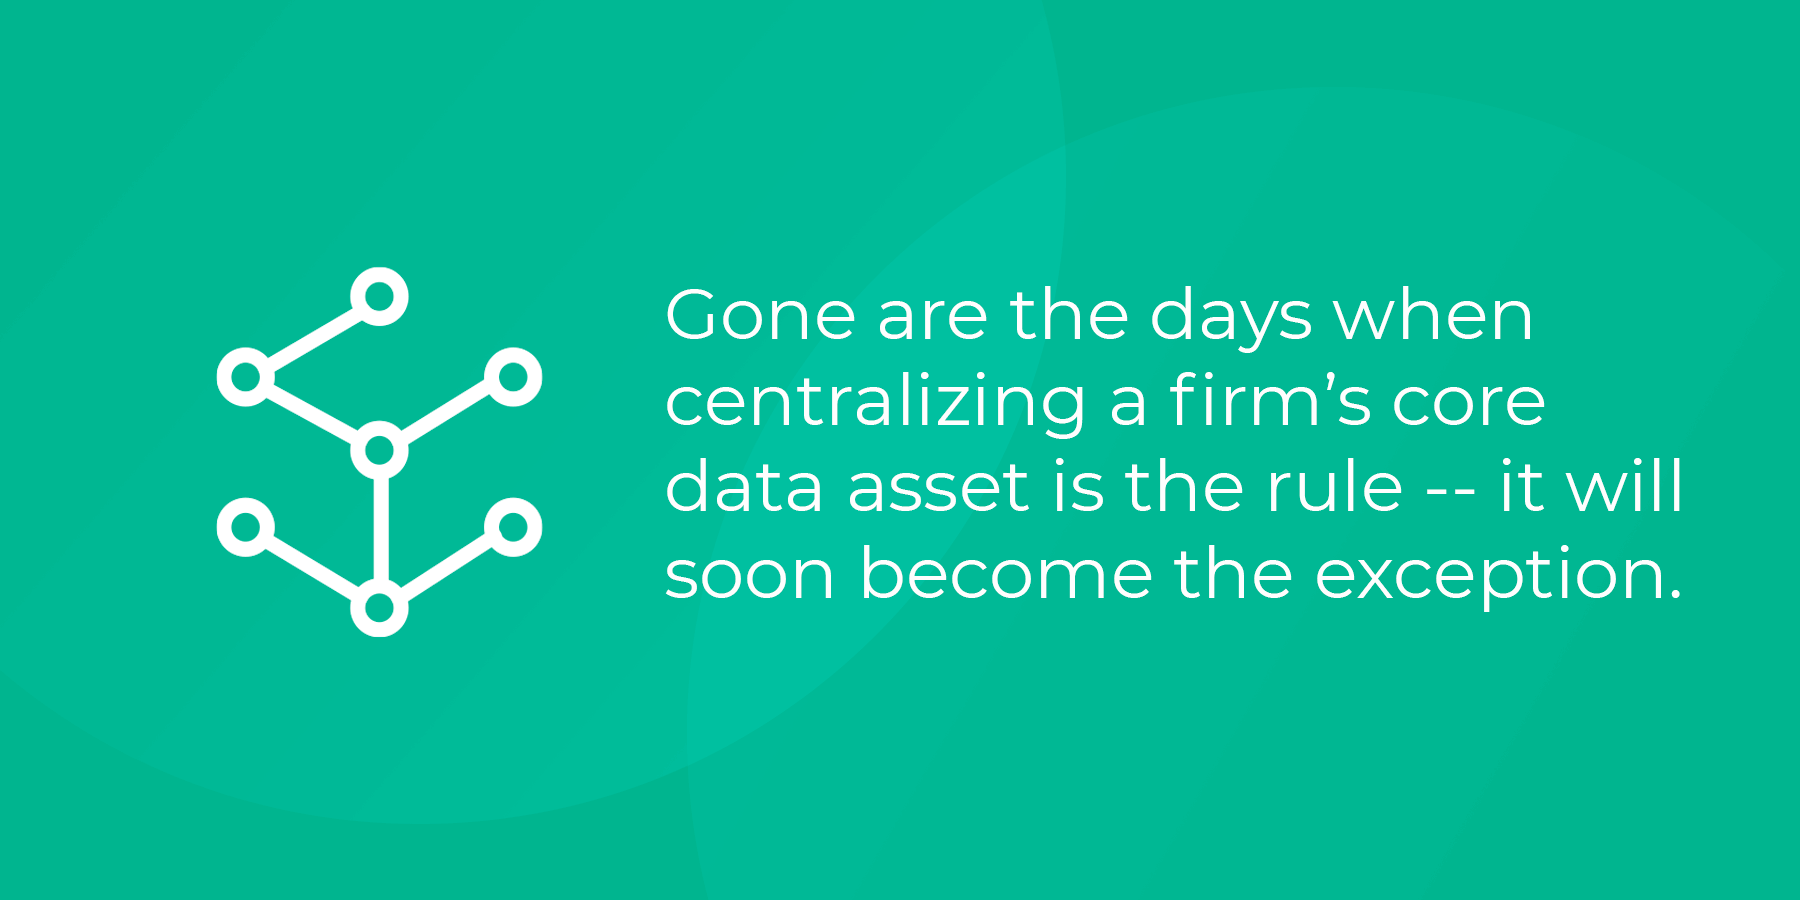 Key takeaway: Gone are the days when centralizing a firm's core data asset is the rule -- it will soon become the exception.